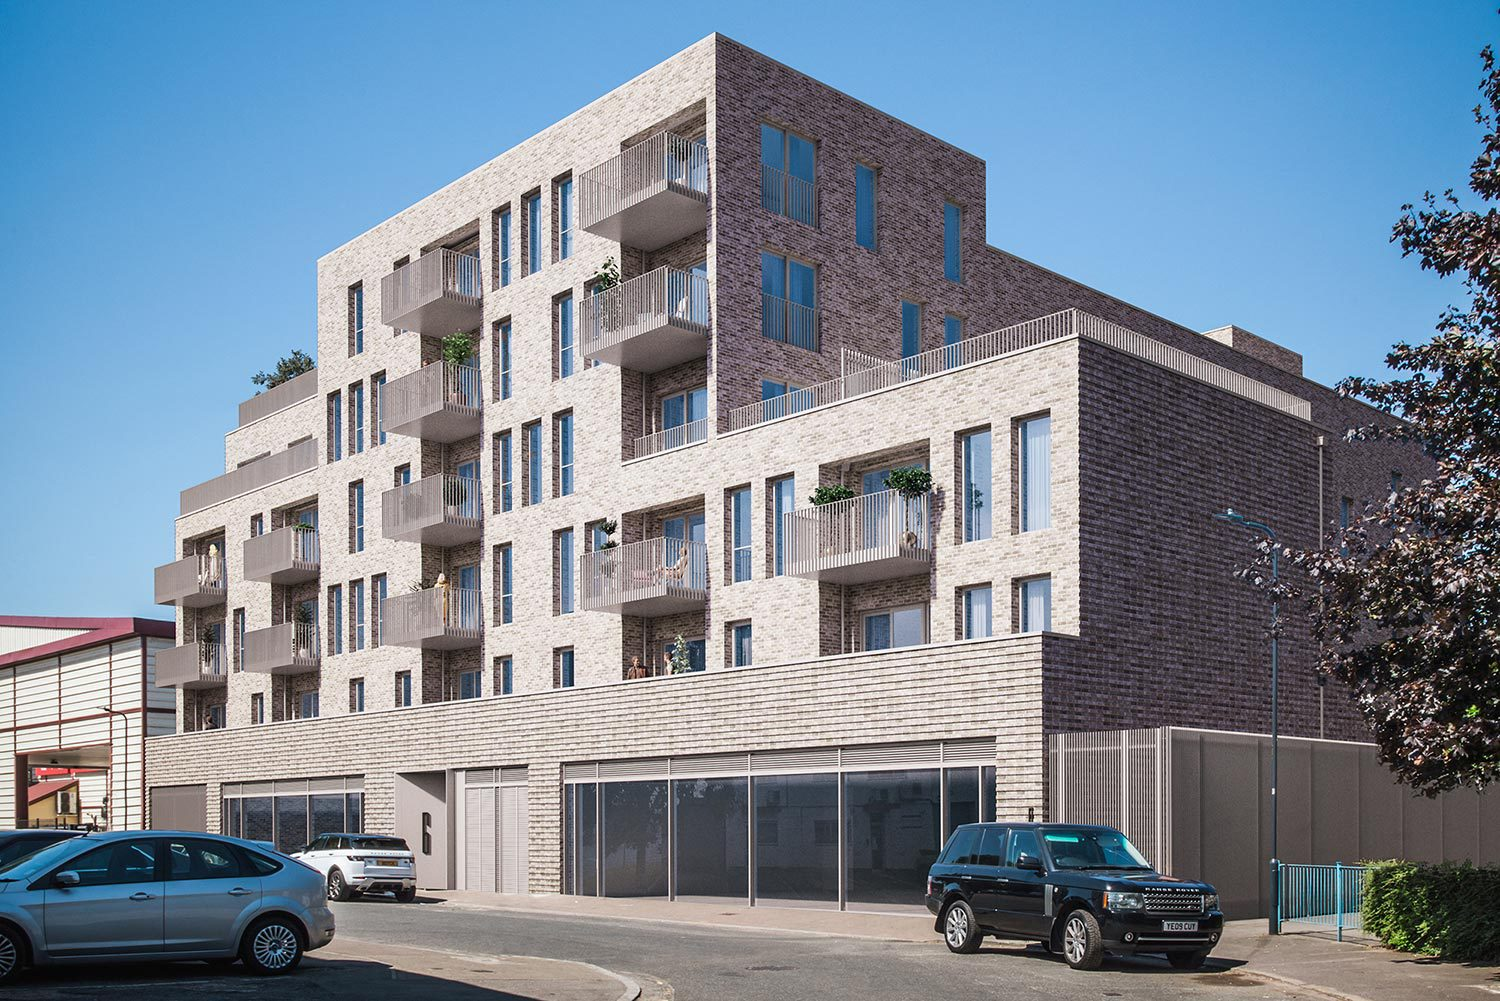 Coombe Road re-submitted